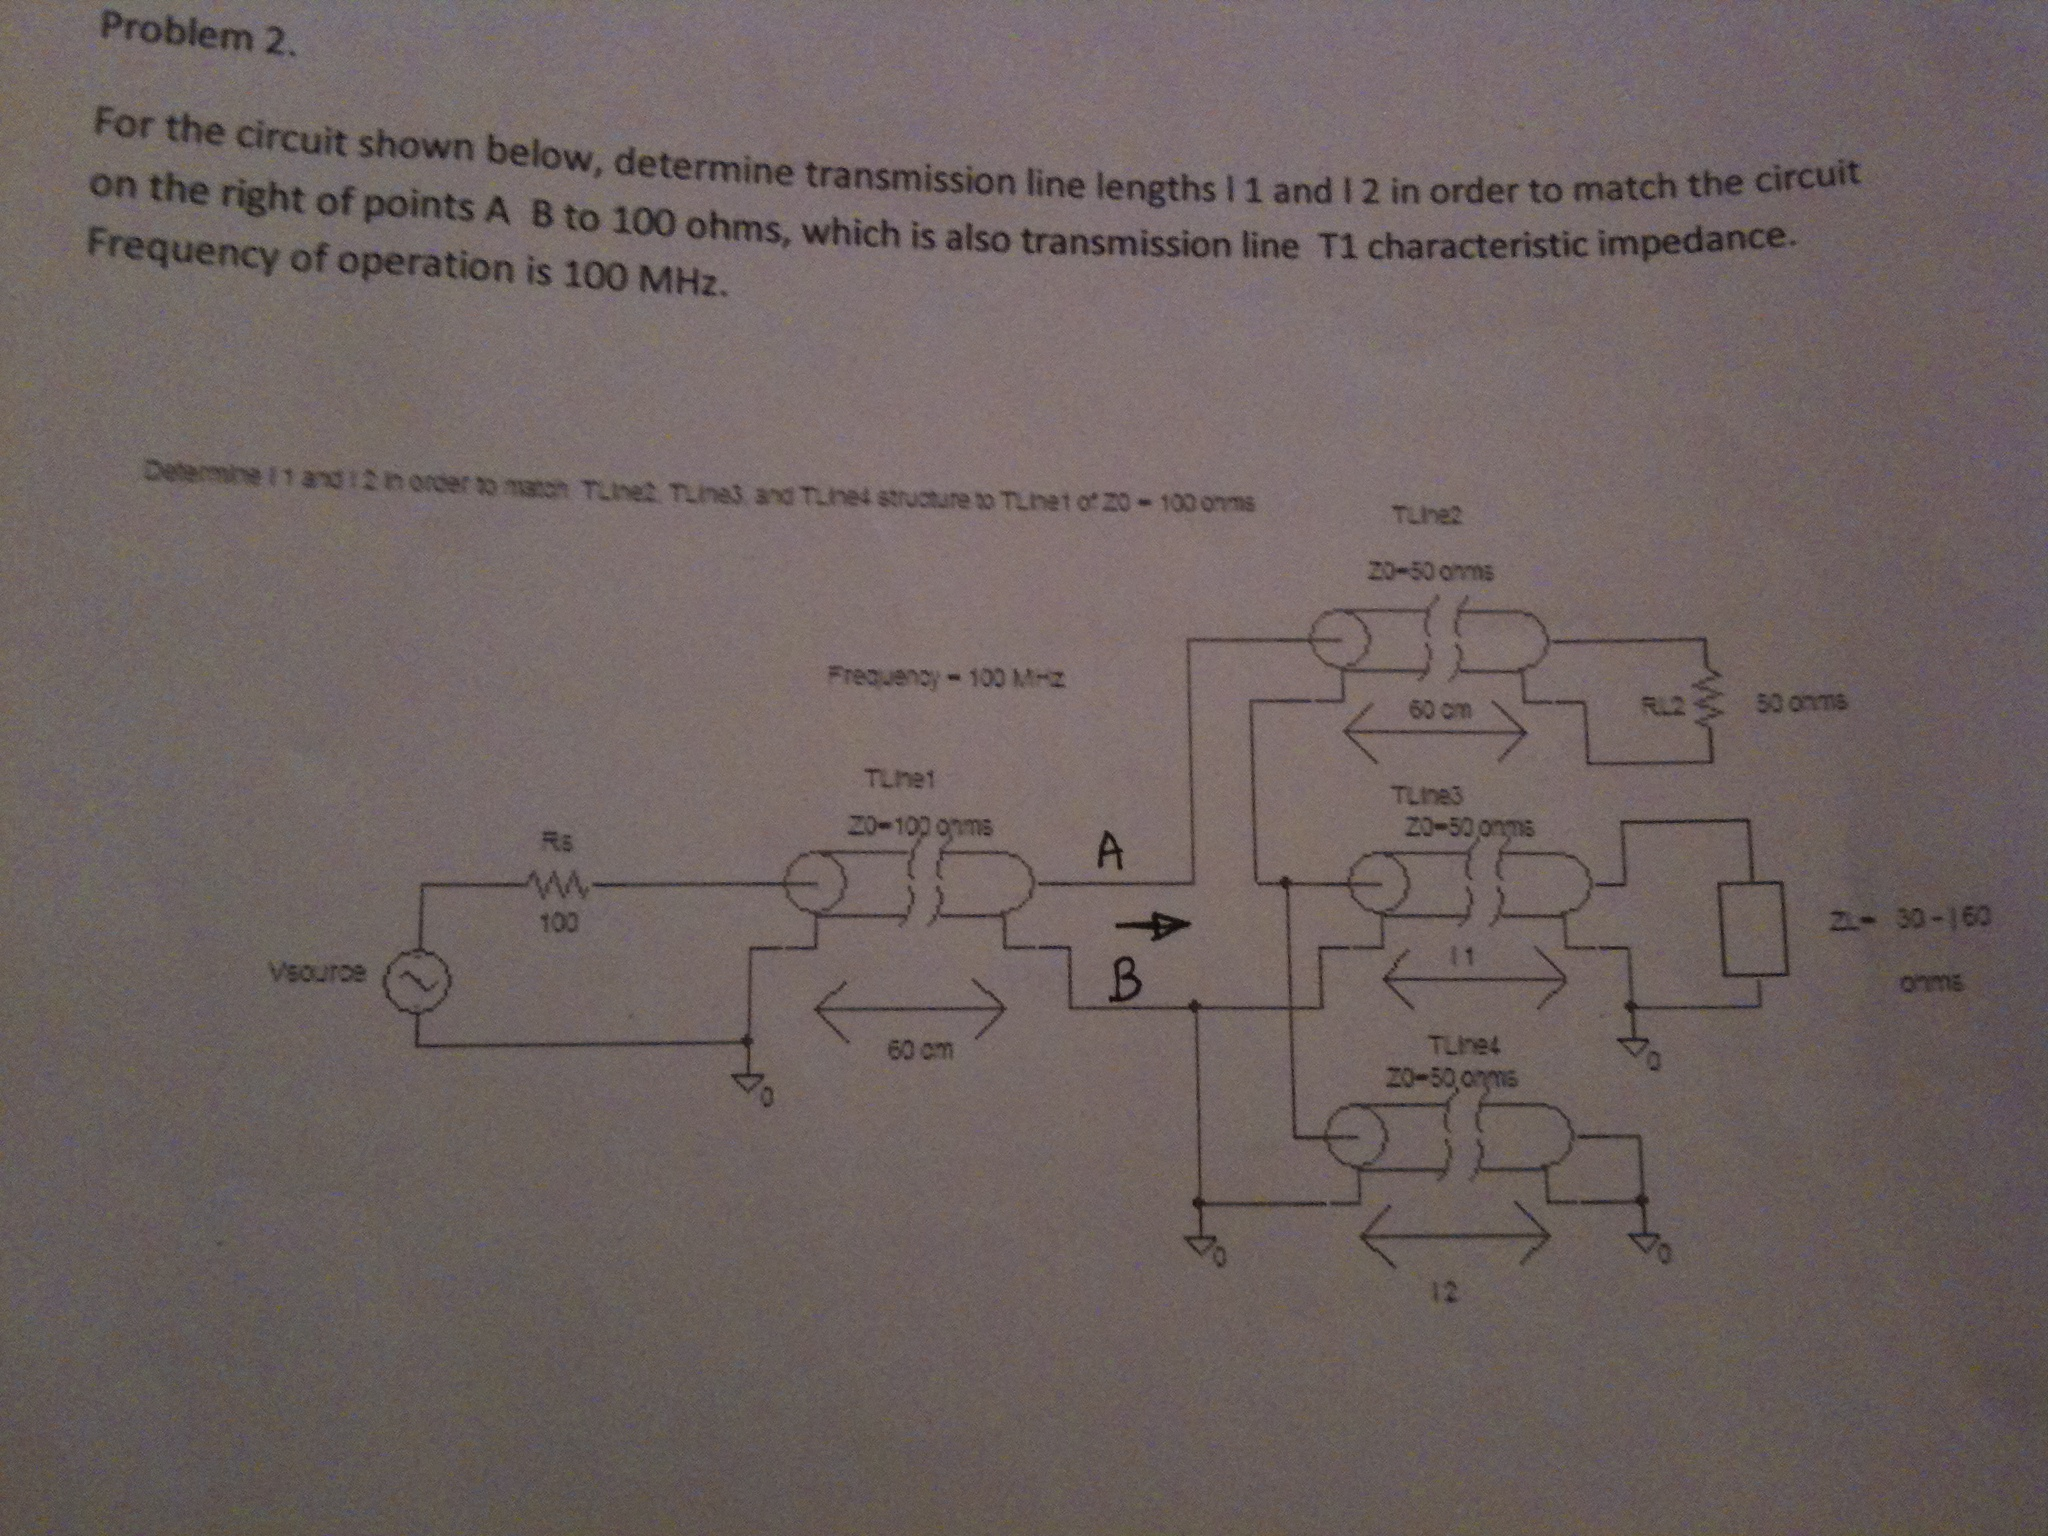 For the circuit shown below, determine transmissio